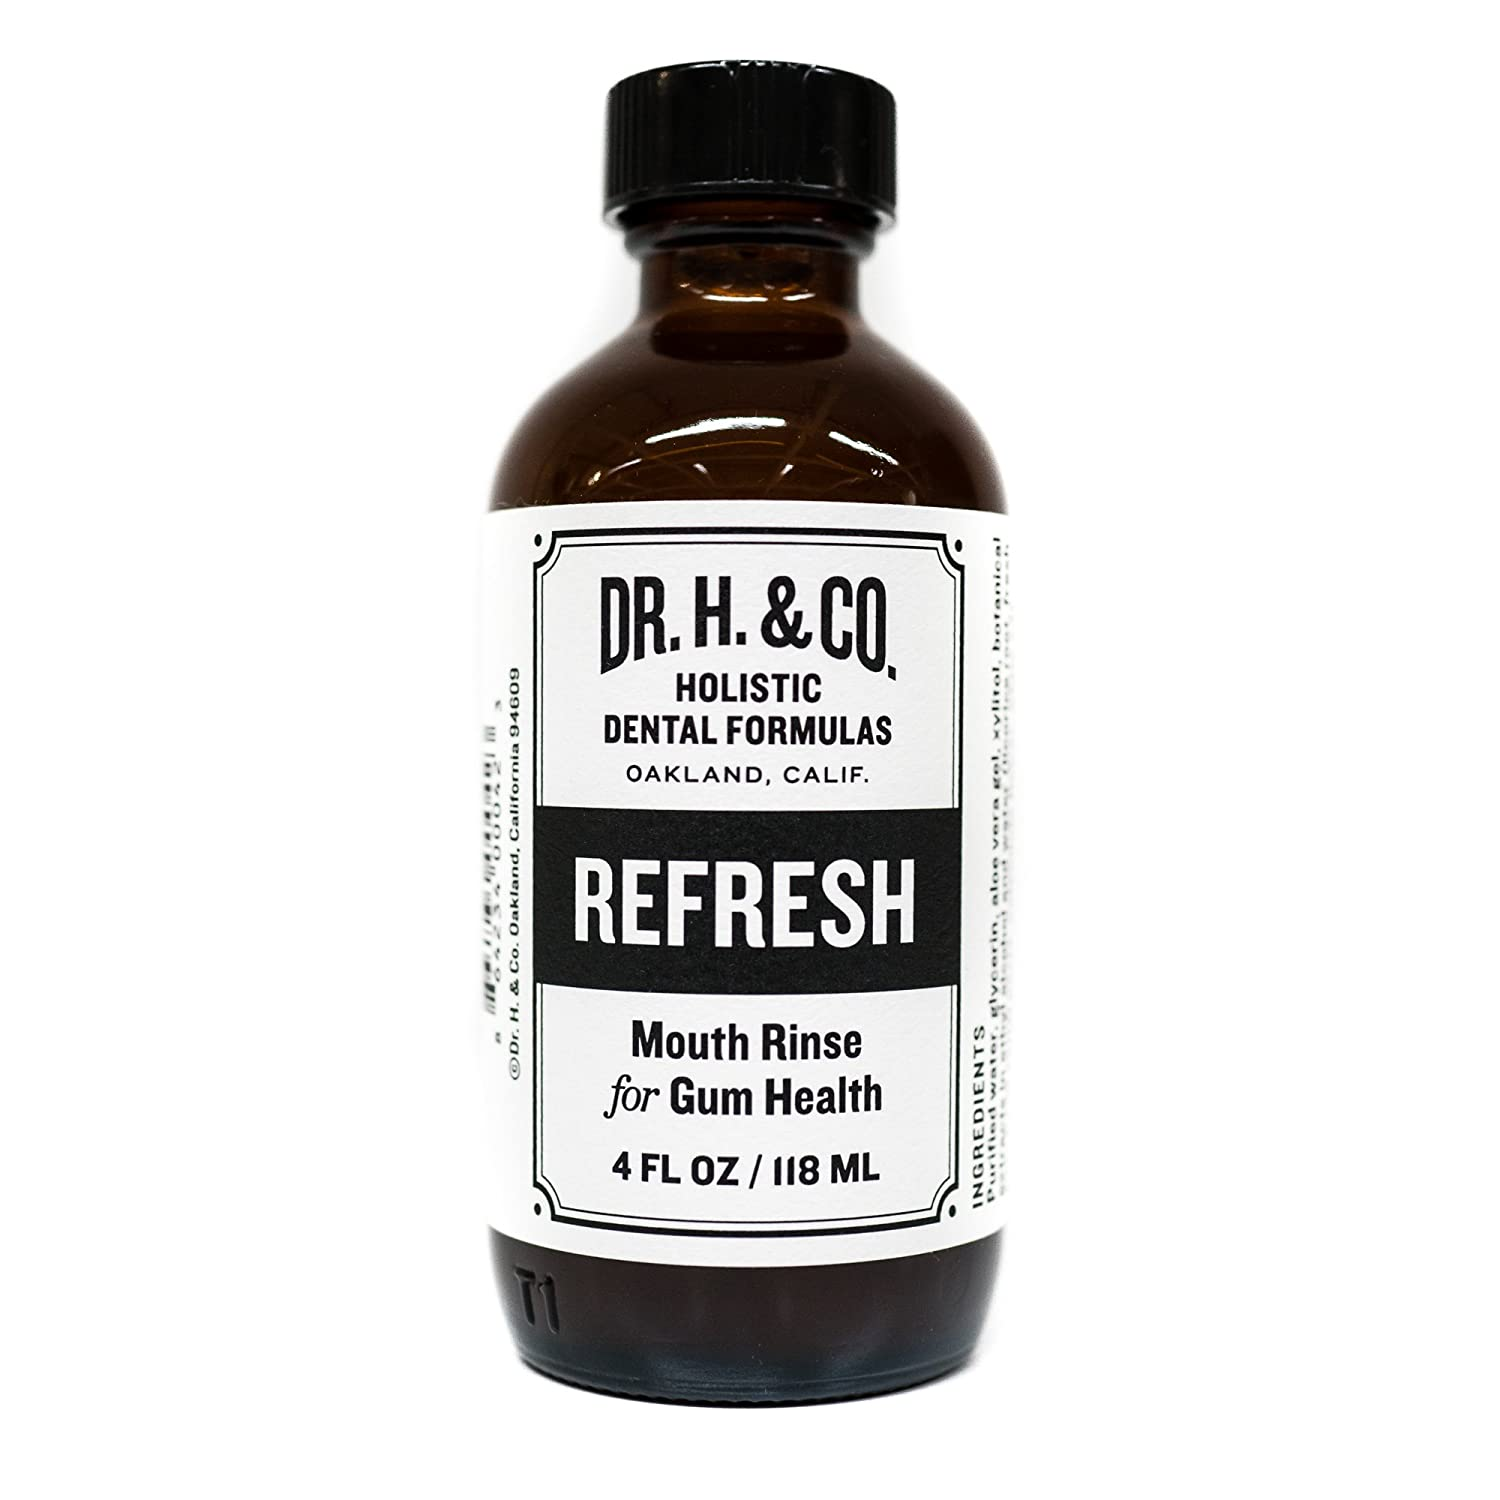 Dr. H. & Co. Dentist Formulated Refresh Mouthwash - All Natural Herbal and Holistic Mouth Rinse for Healthy Gums and Teeth (4 oz Glass Bottle)